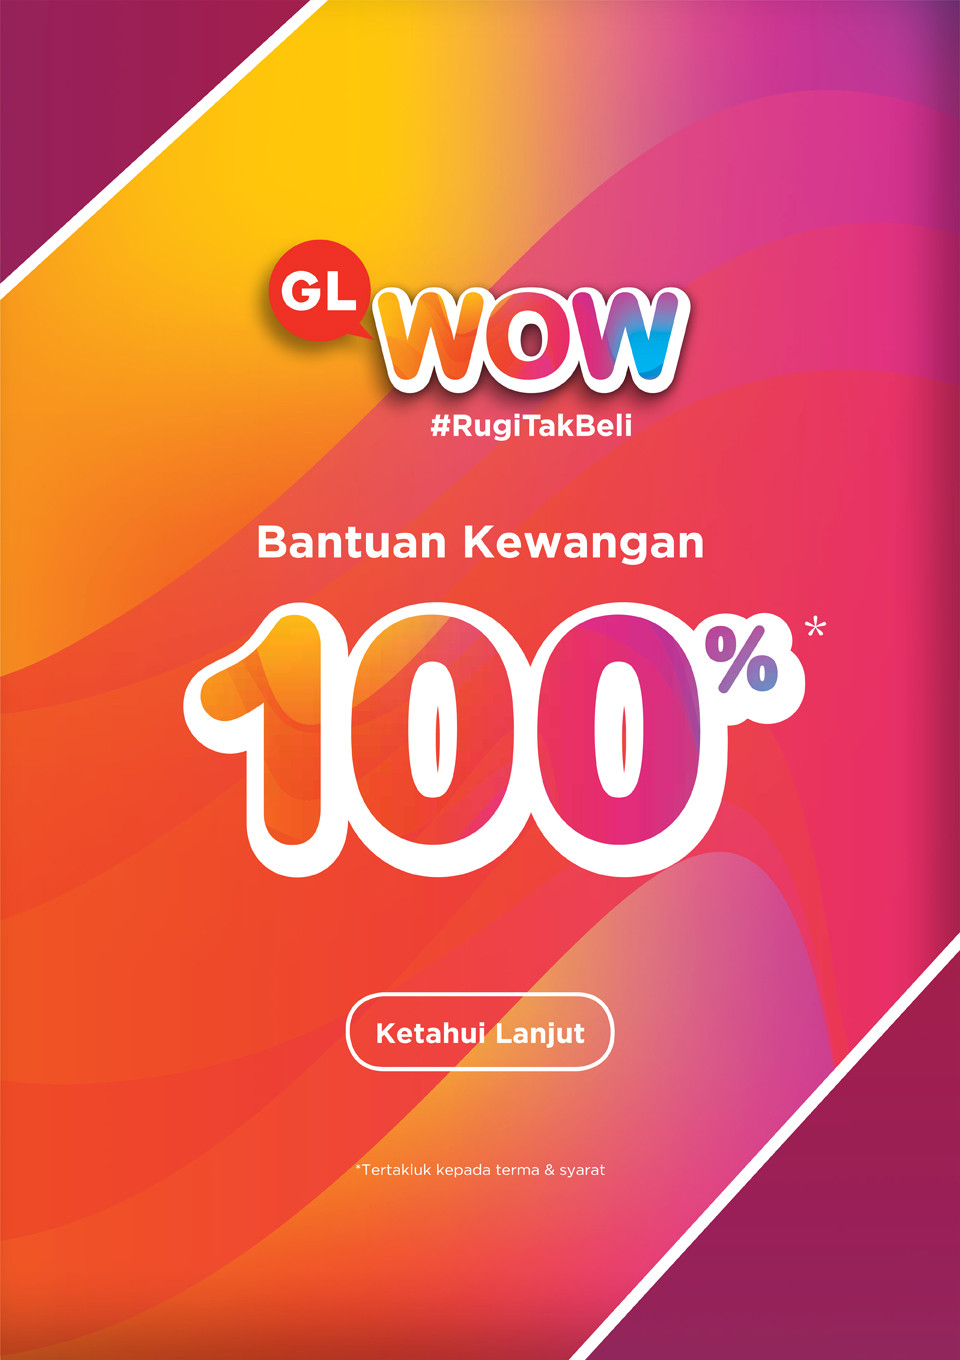 GL Wow 100% Financing V4